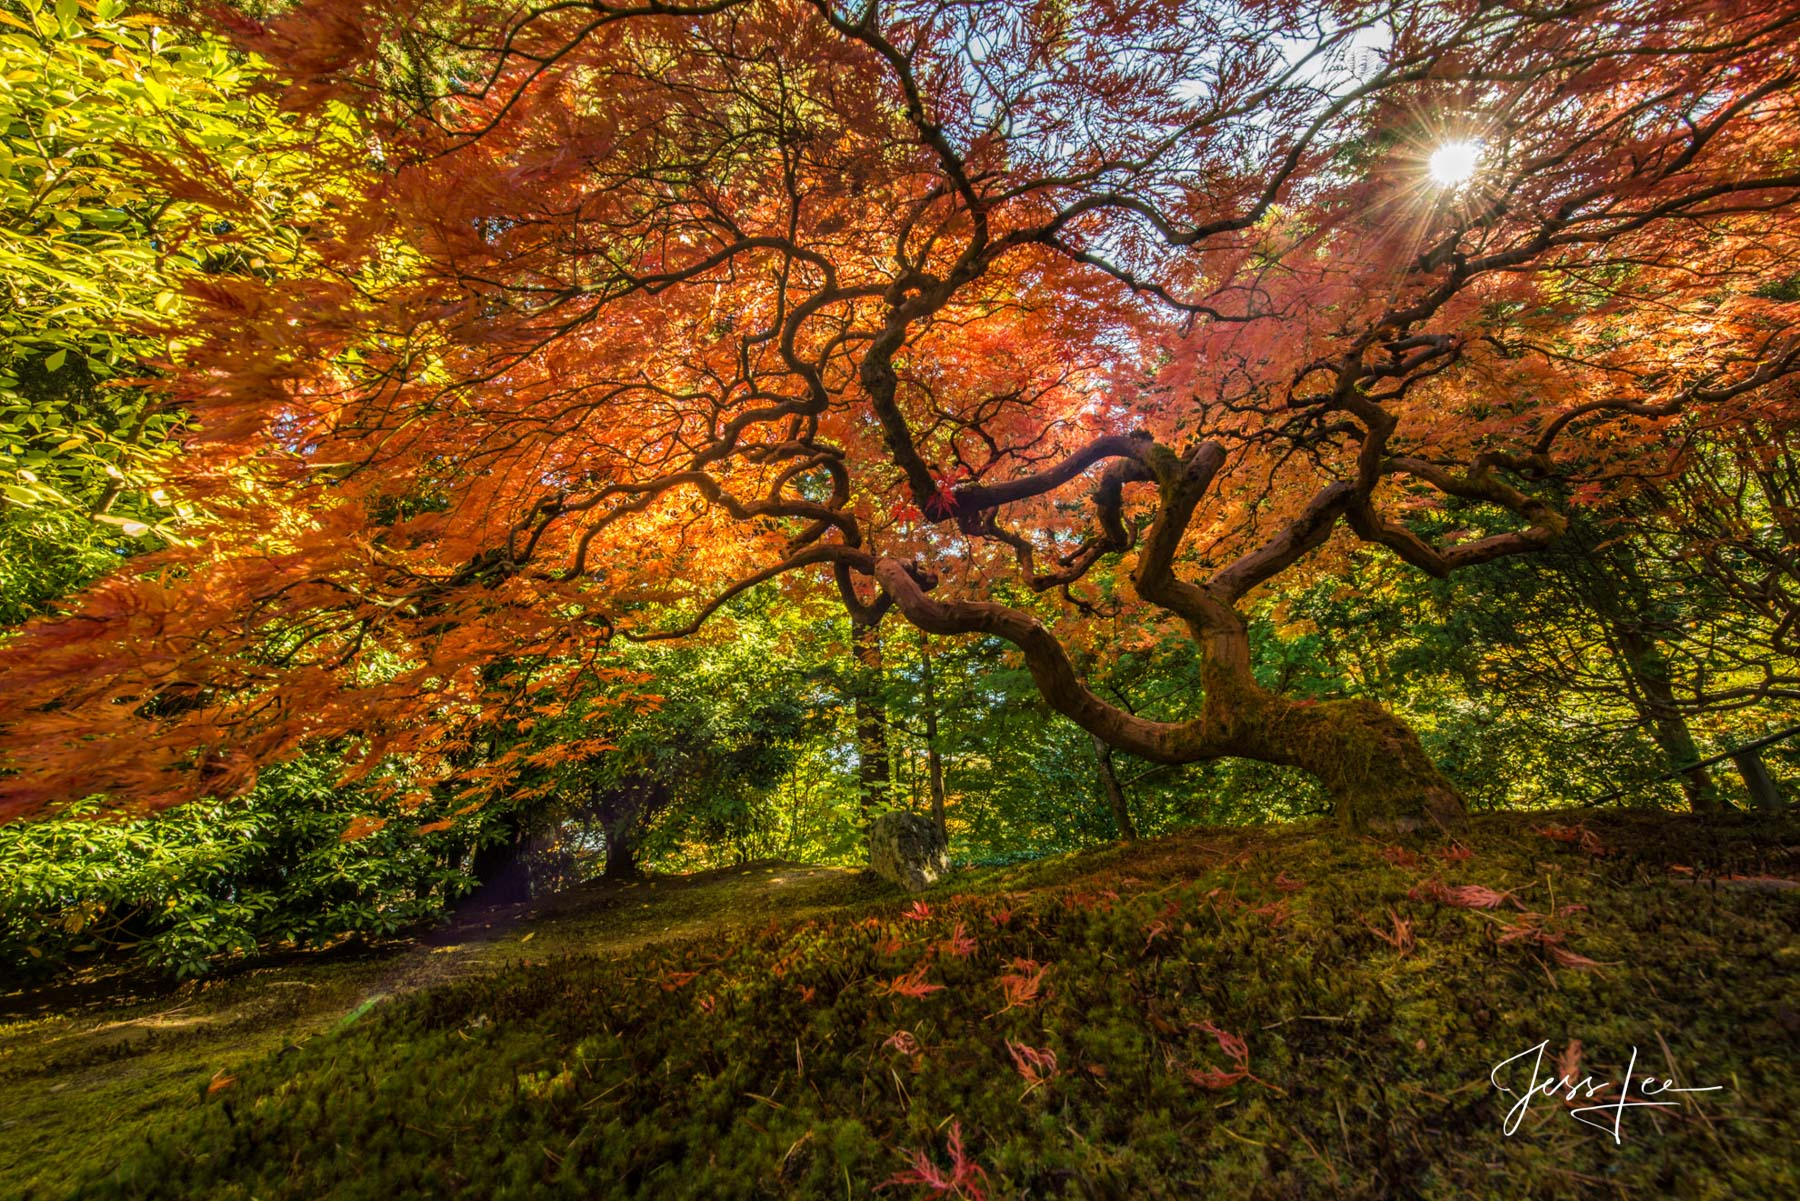 Red Maple tree with autumn color, photo